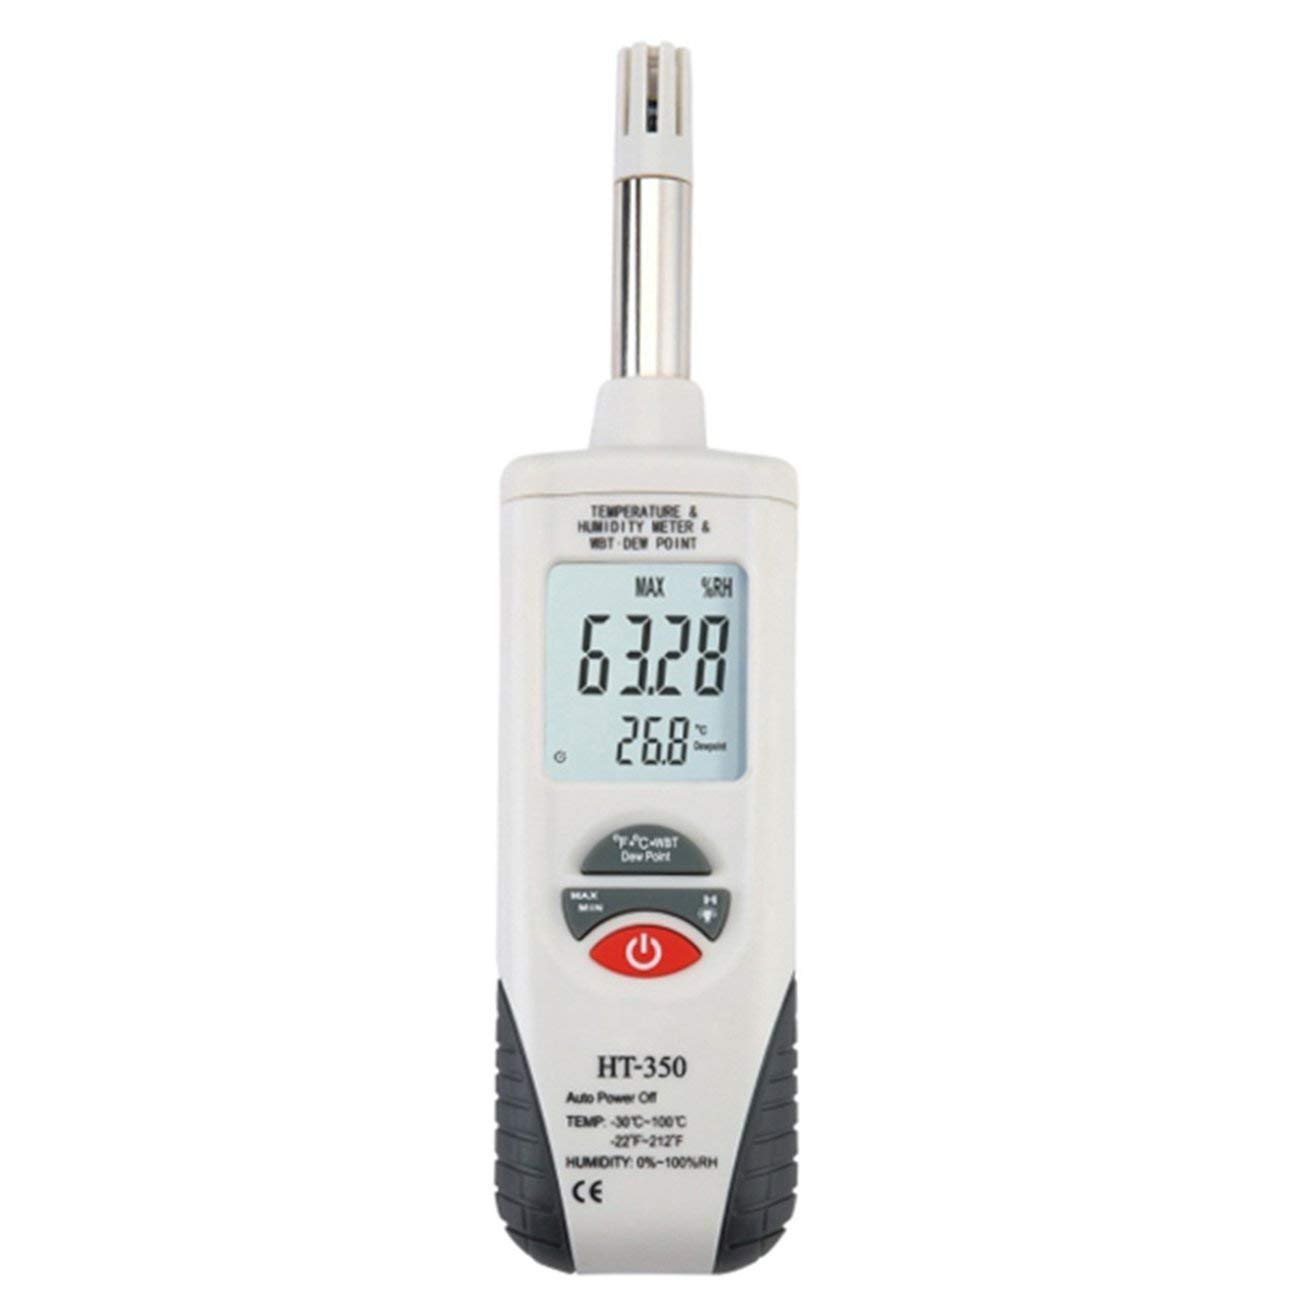 Jiobapiongxin HT-350 Mini High Accuracy Thermometer LCD Display Temperature Humidity Meter